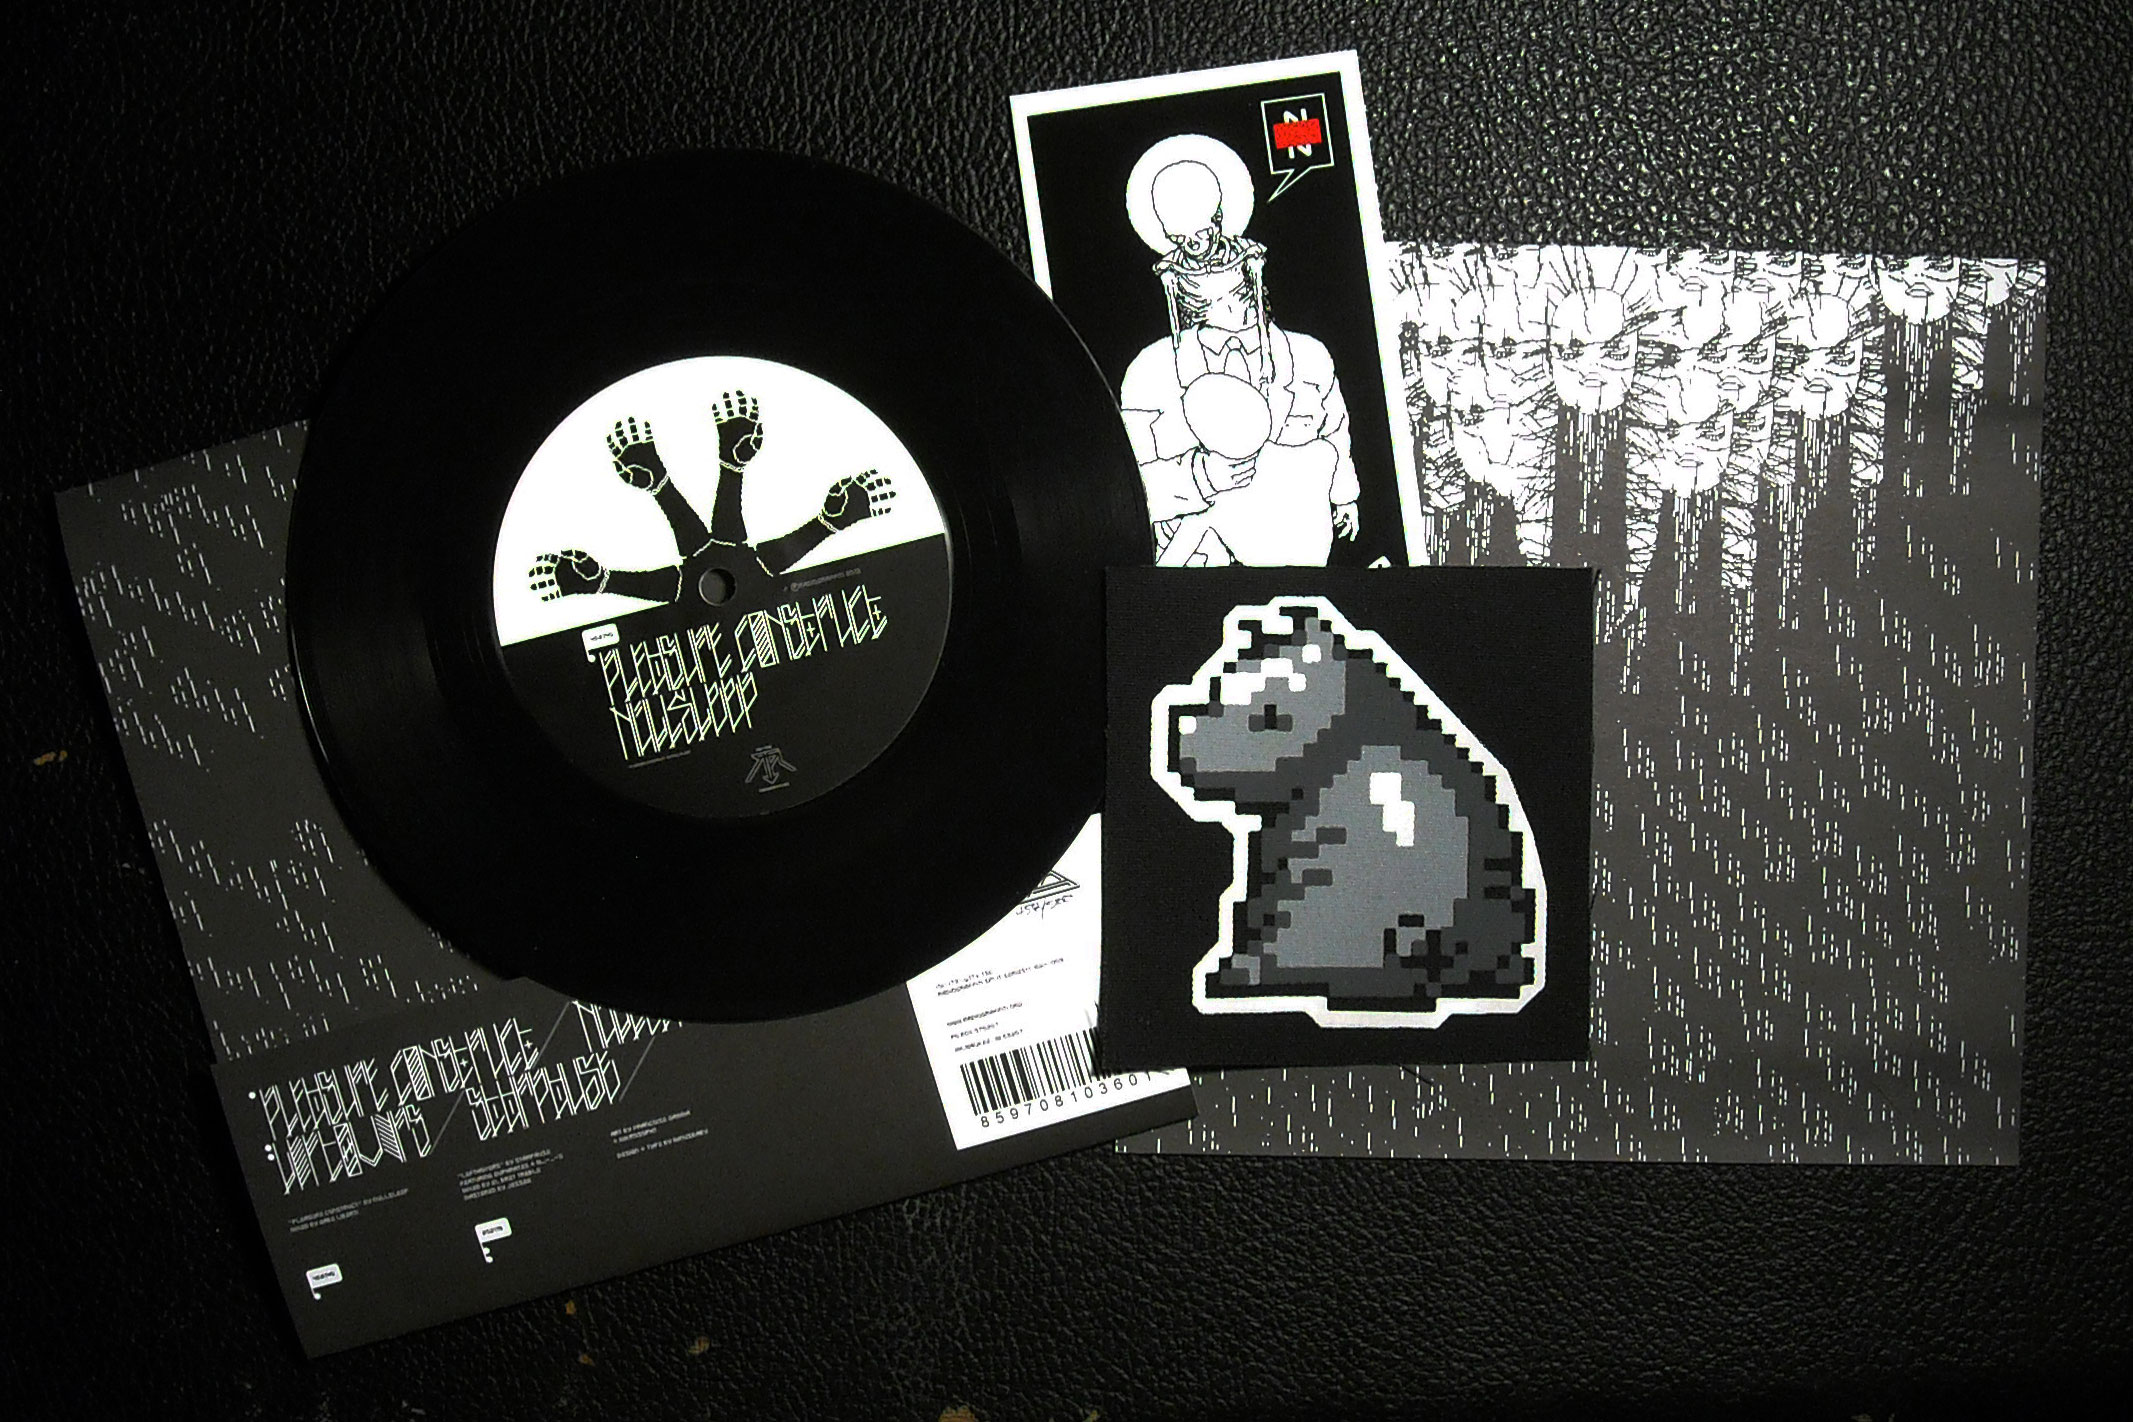 7inch release goodies